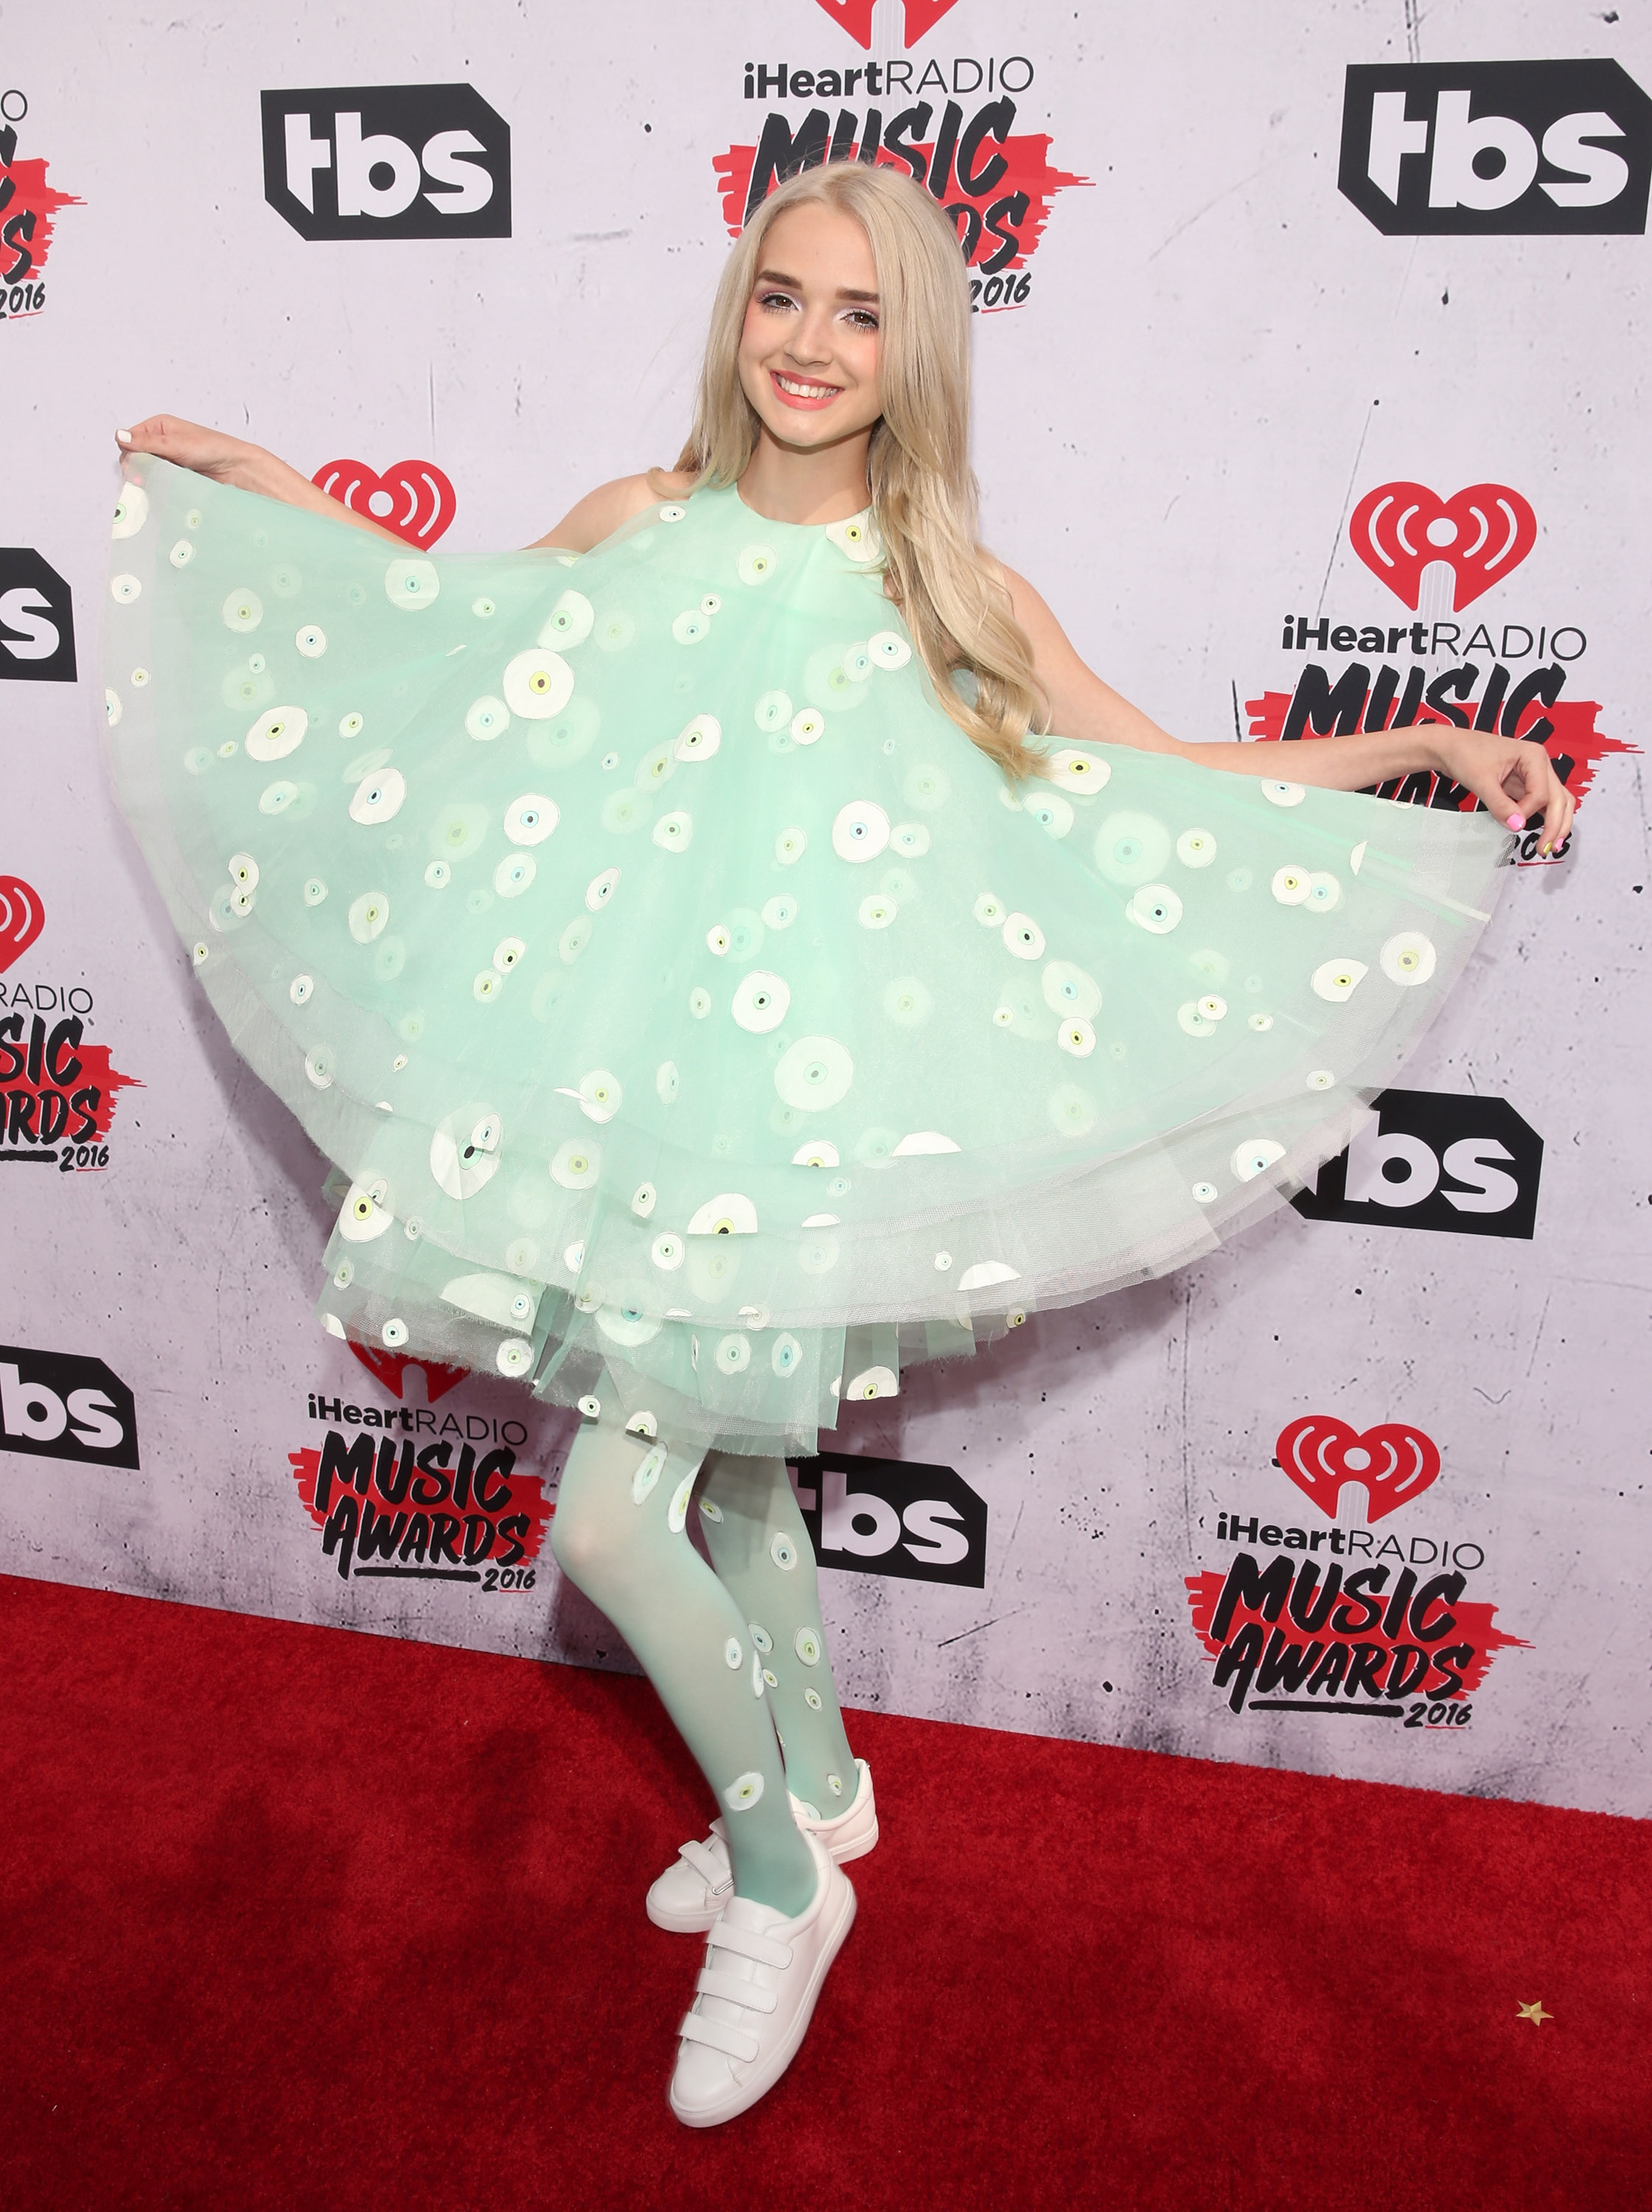 INGLEWOOD, CALIFORNIA - APRIL 03: That Poppy attends the iHeartRadio Music Awards at the Forum on April 3, 2016 in Inglewood, California. (Photo by Todd Williamson/Getty Images)